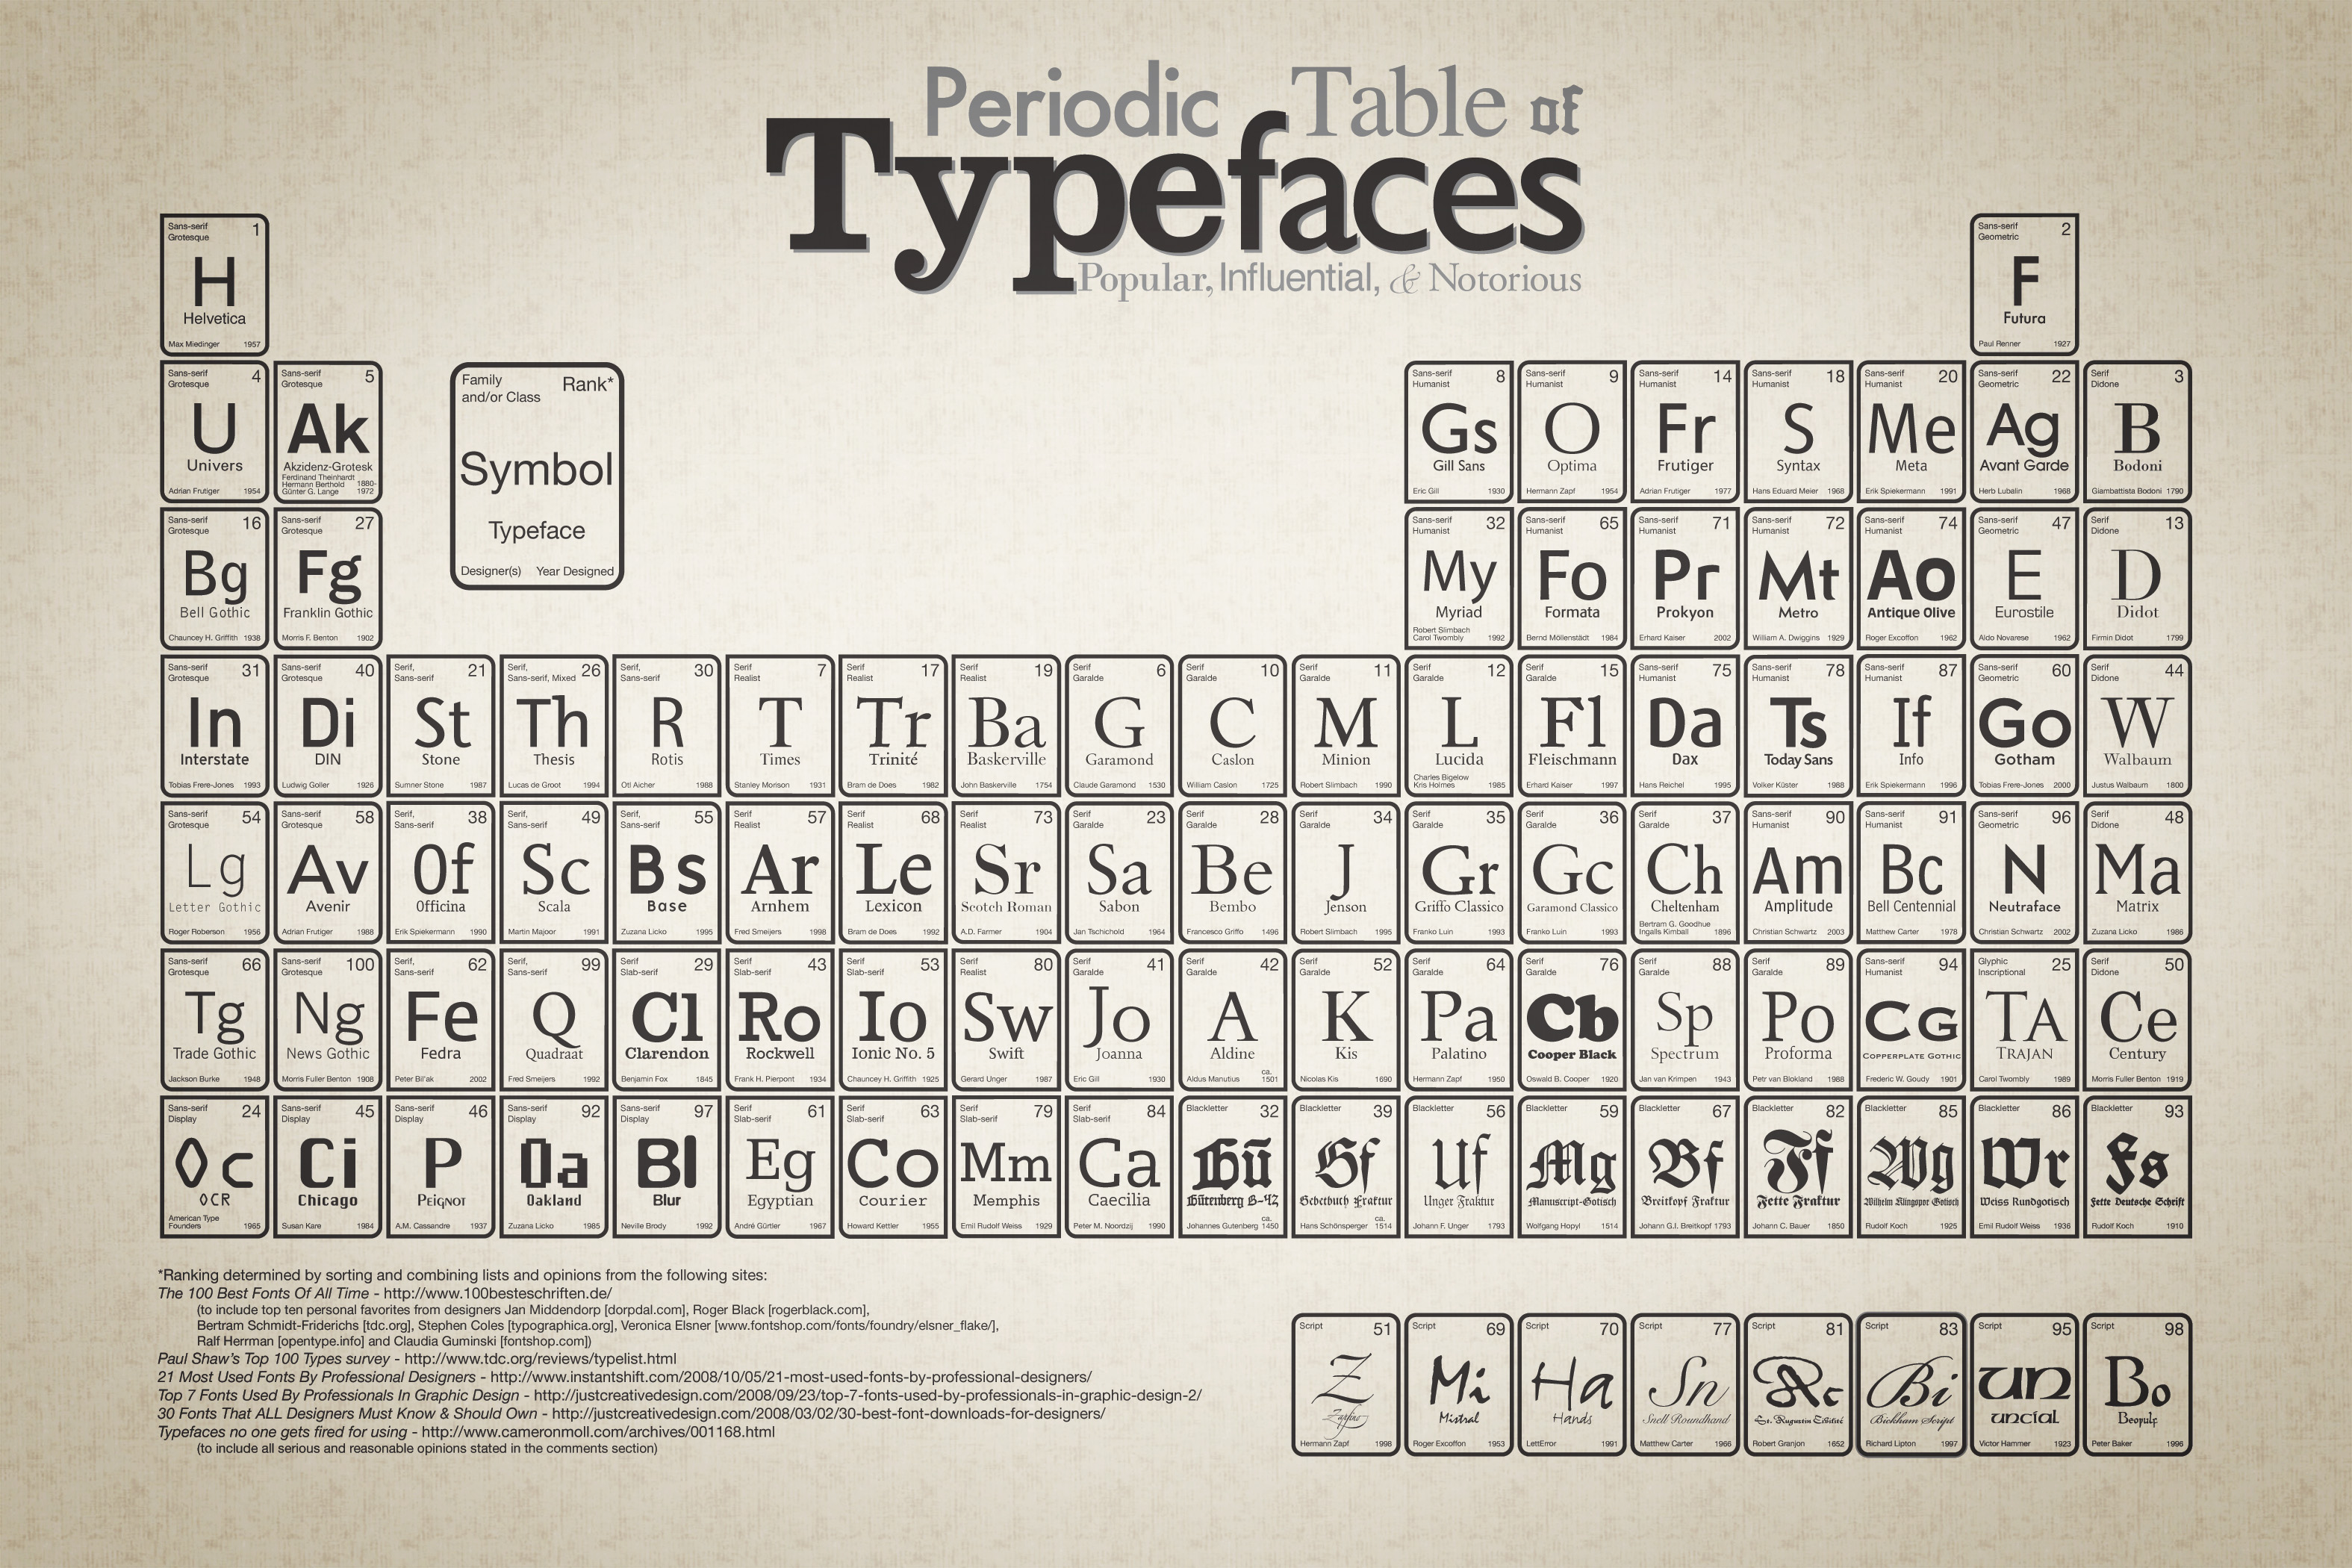 Pete mckee periodic table images periodic table images sheffield periodic table image collections periodic table images information library 201 hosted by stylee32 table of gamestrikefo Image collections